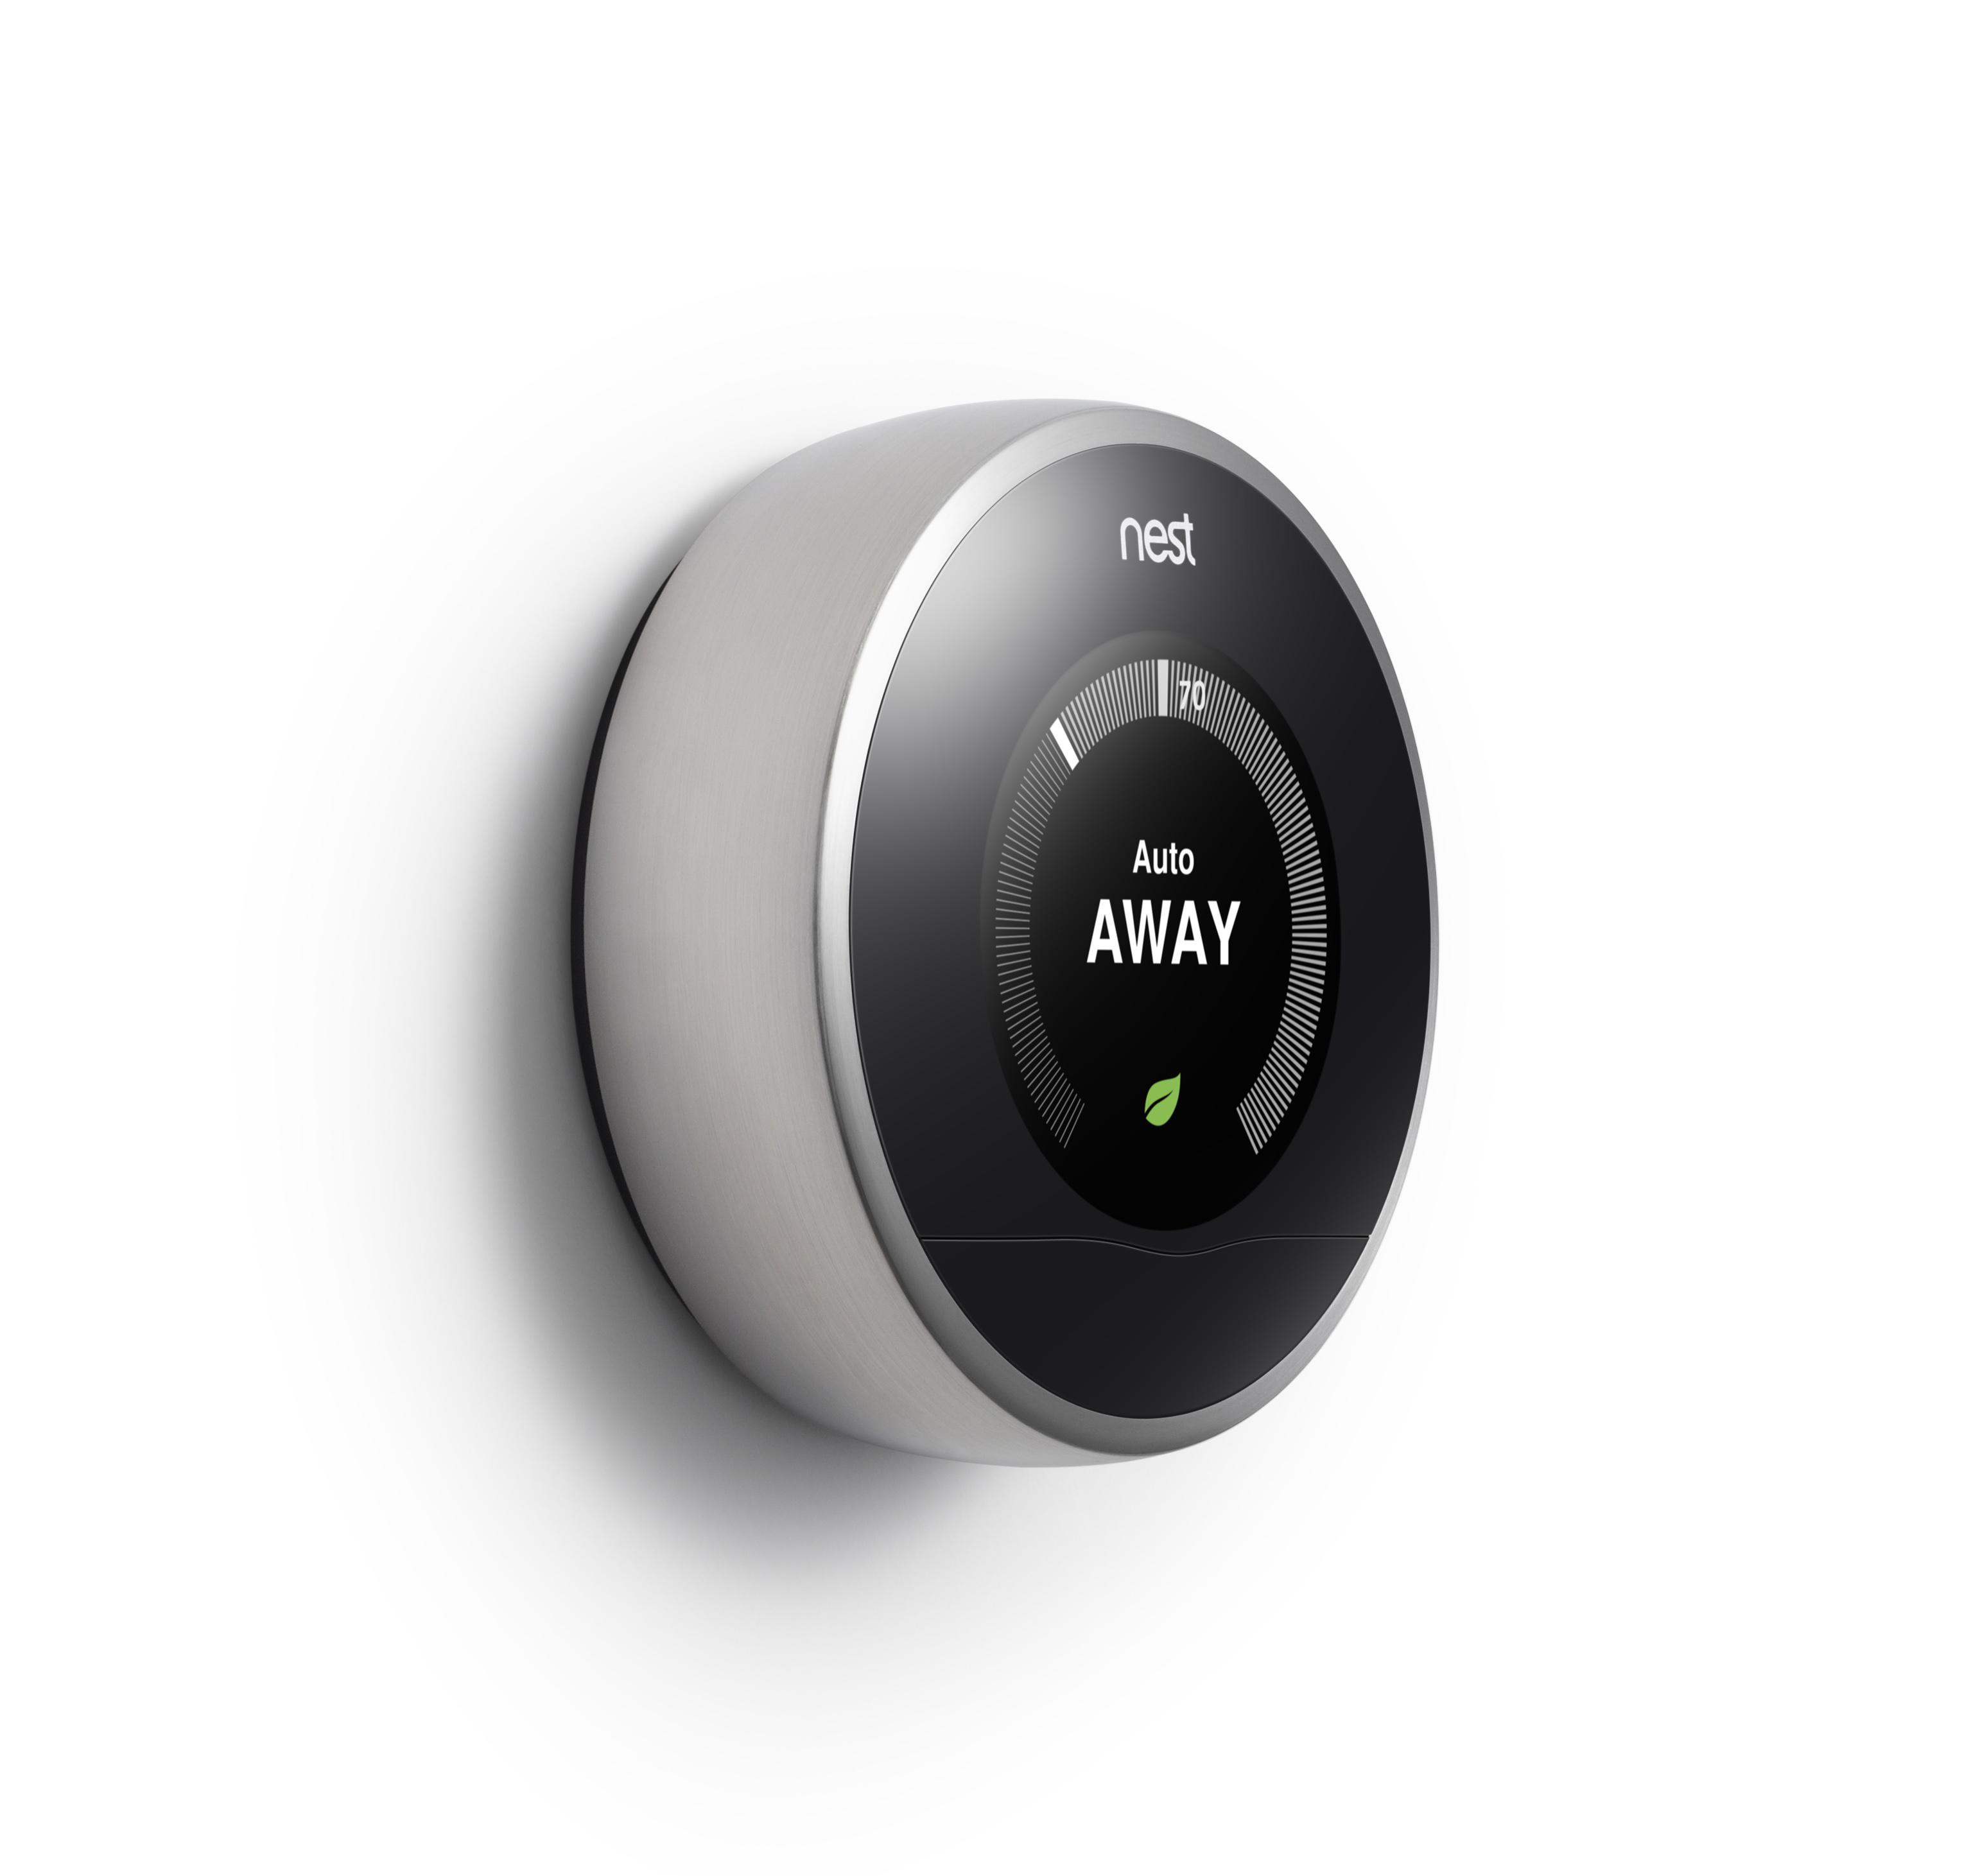 Nest's thermostat. Image courtesy of Nest.